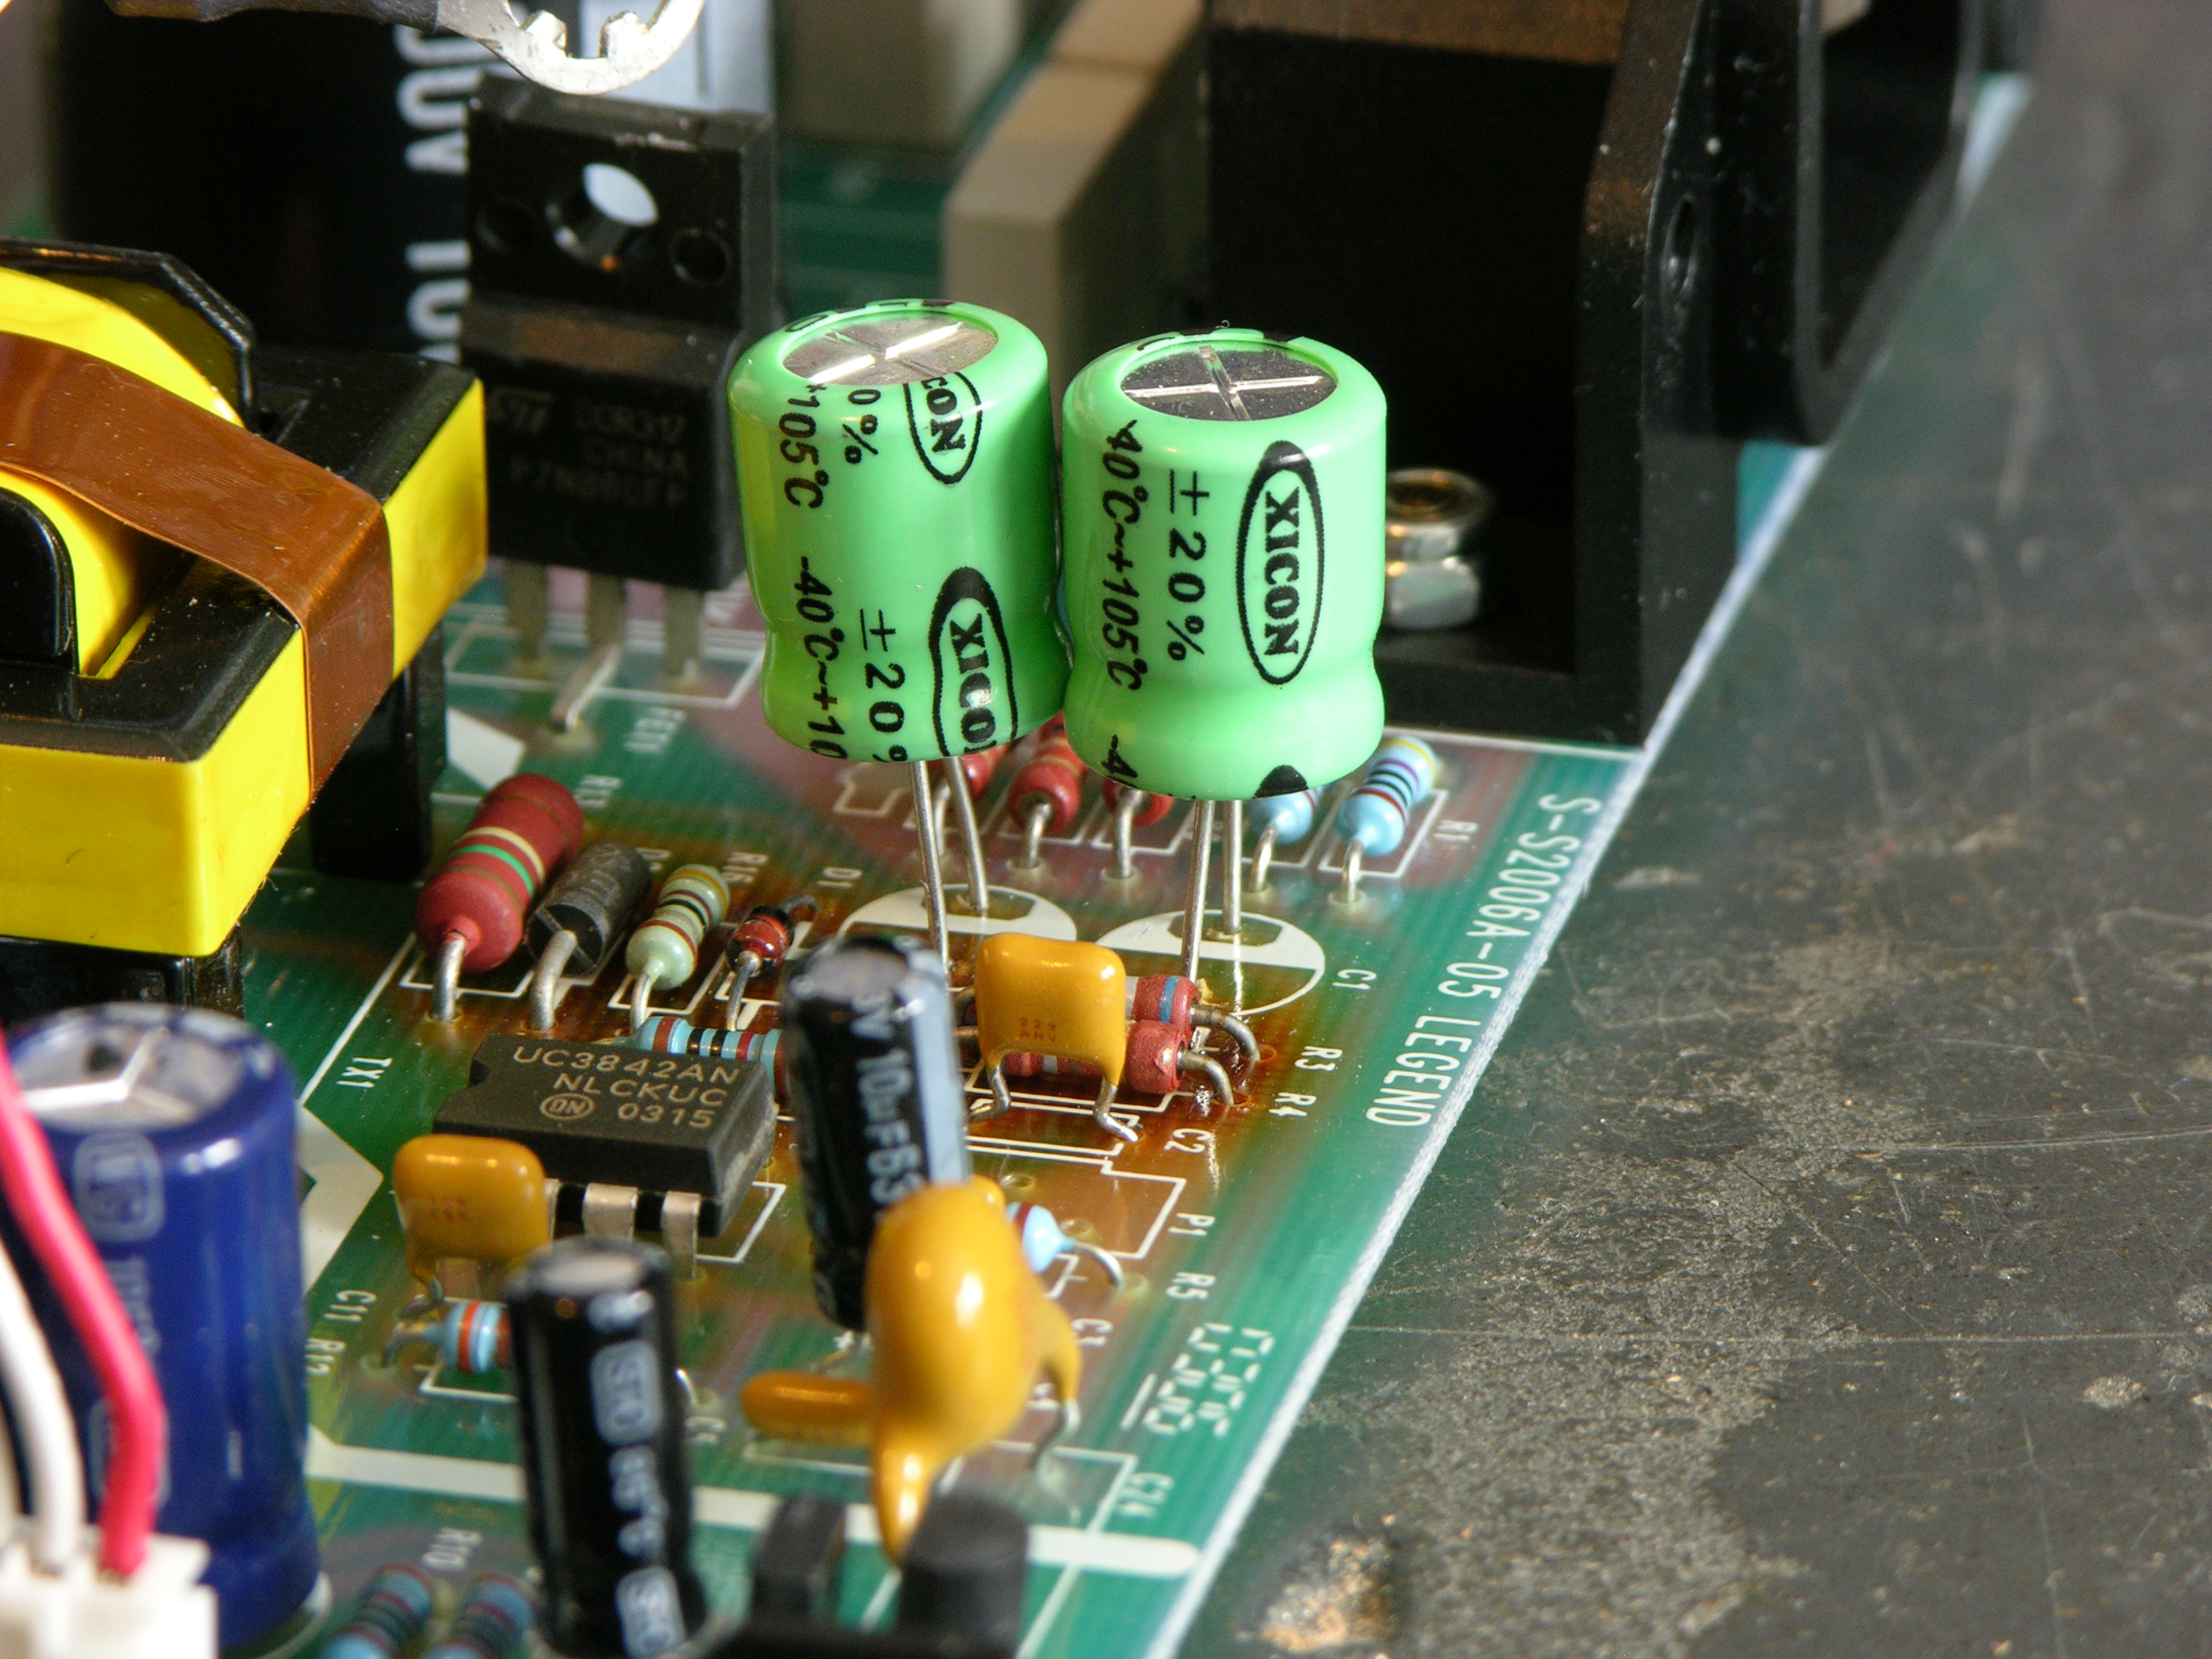 Repairing A Soundcraft Spirit E6 Mixer Switching Power Supply Changing The Output Voltage Of Ringing Circuit Board With Replacement Capacitors